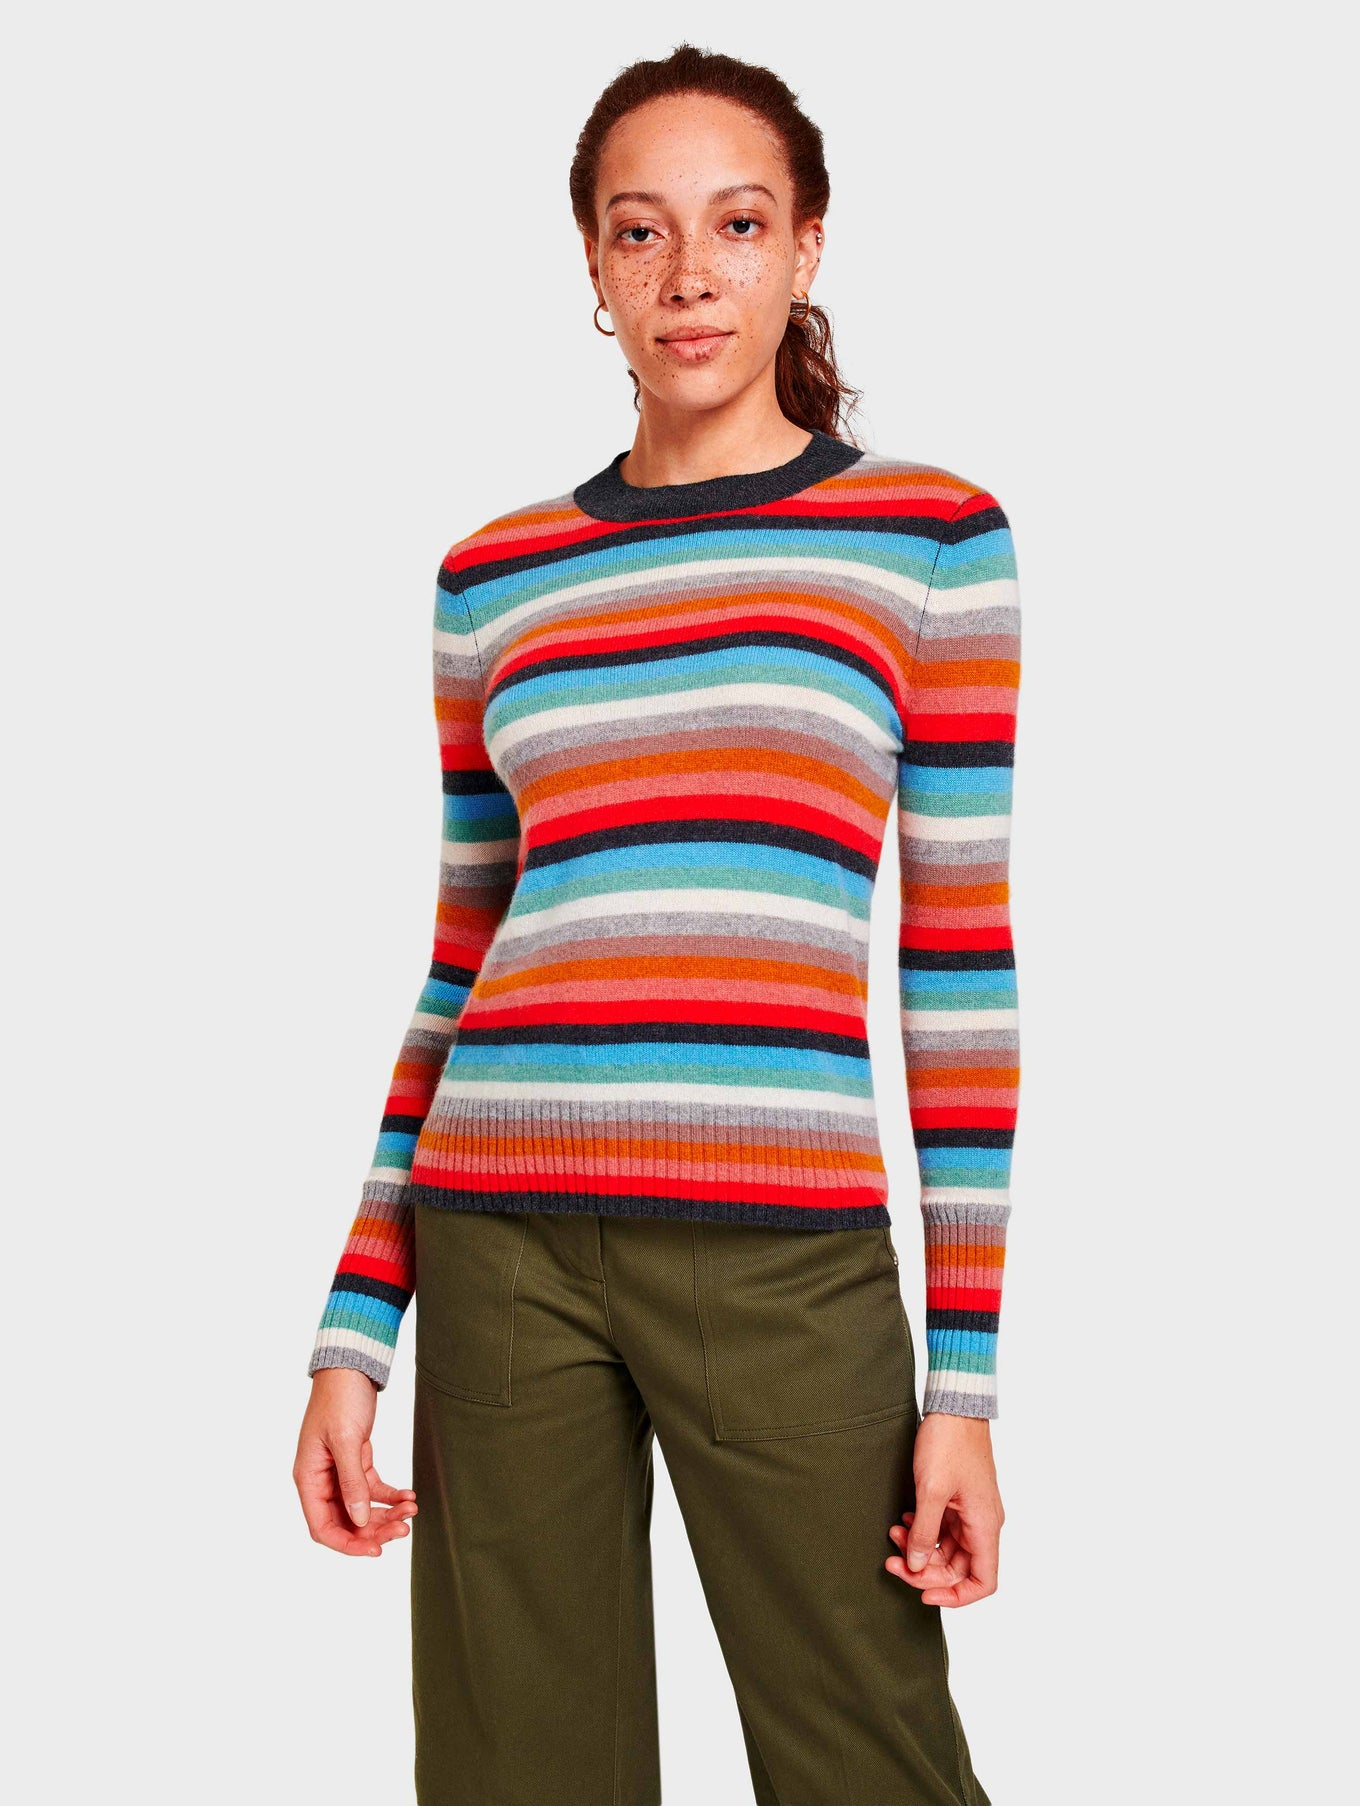 Cashmere Stripe Mockneck - Sunset Red Multi - Image 3